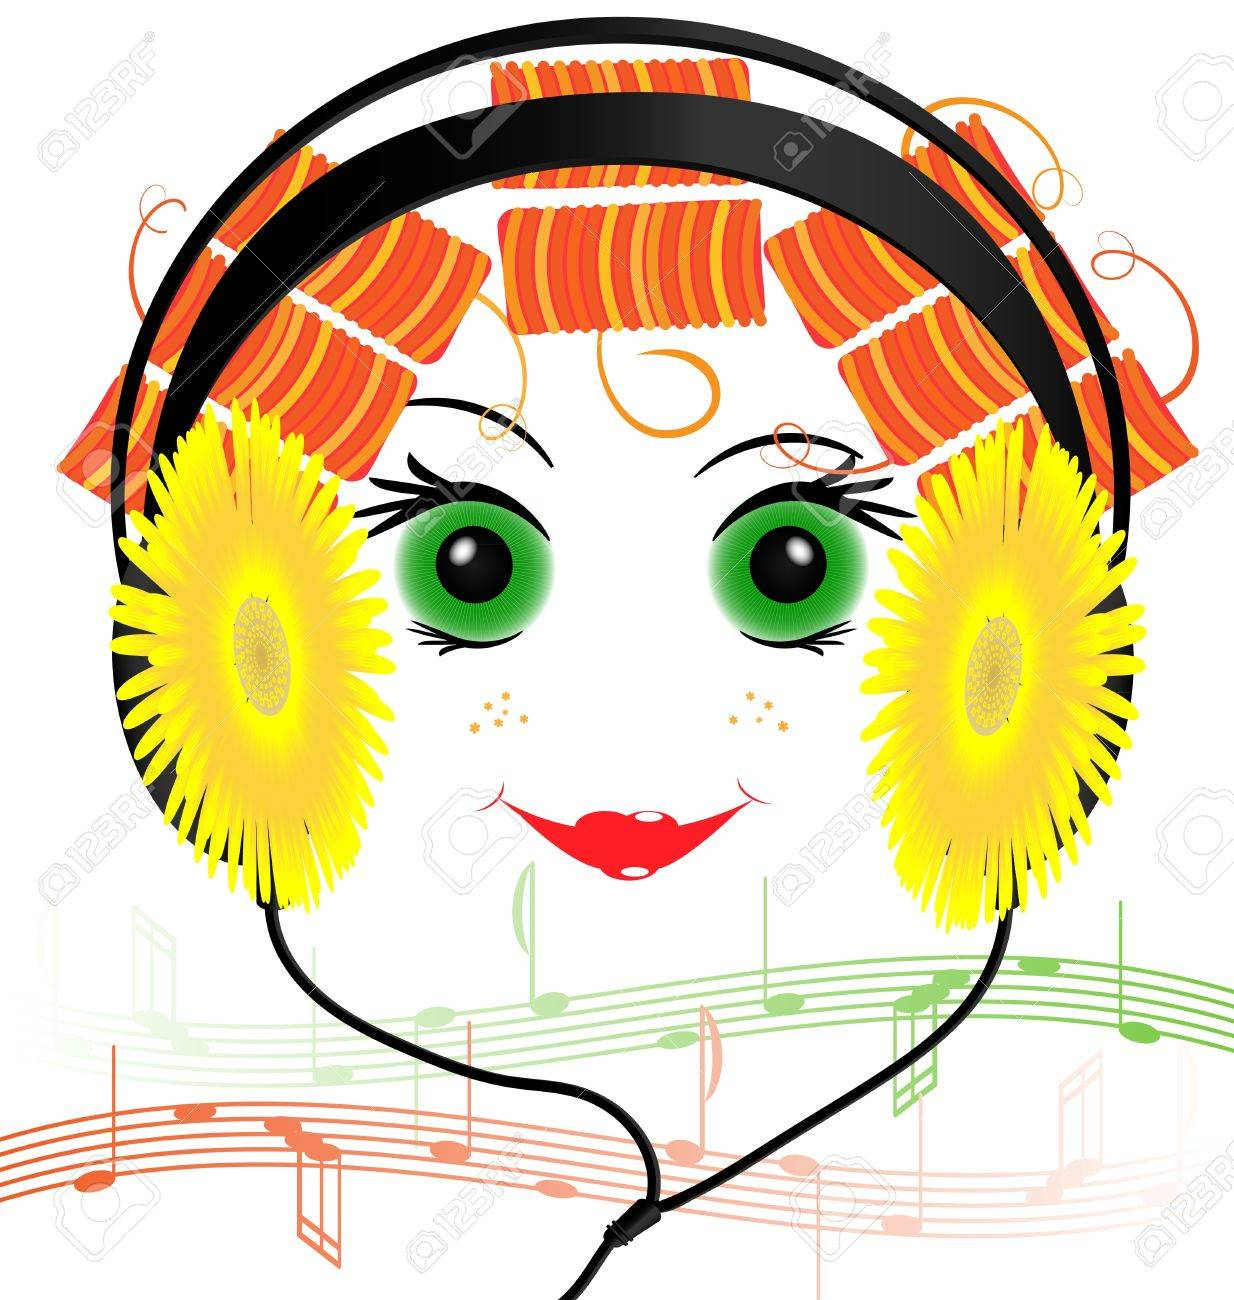 music headphones in the form of yellow flowers and smiling funny